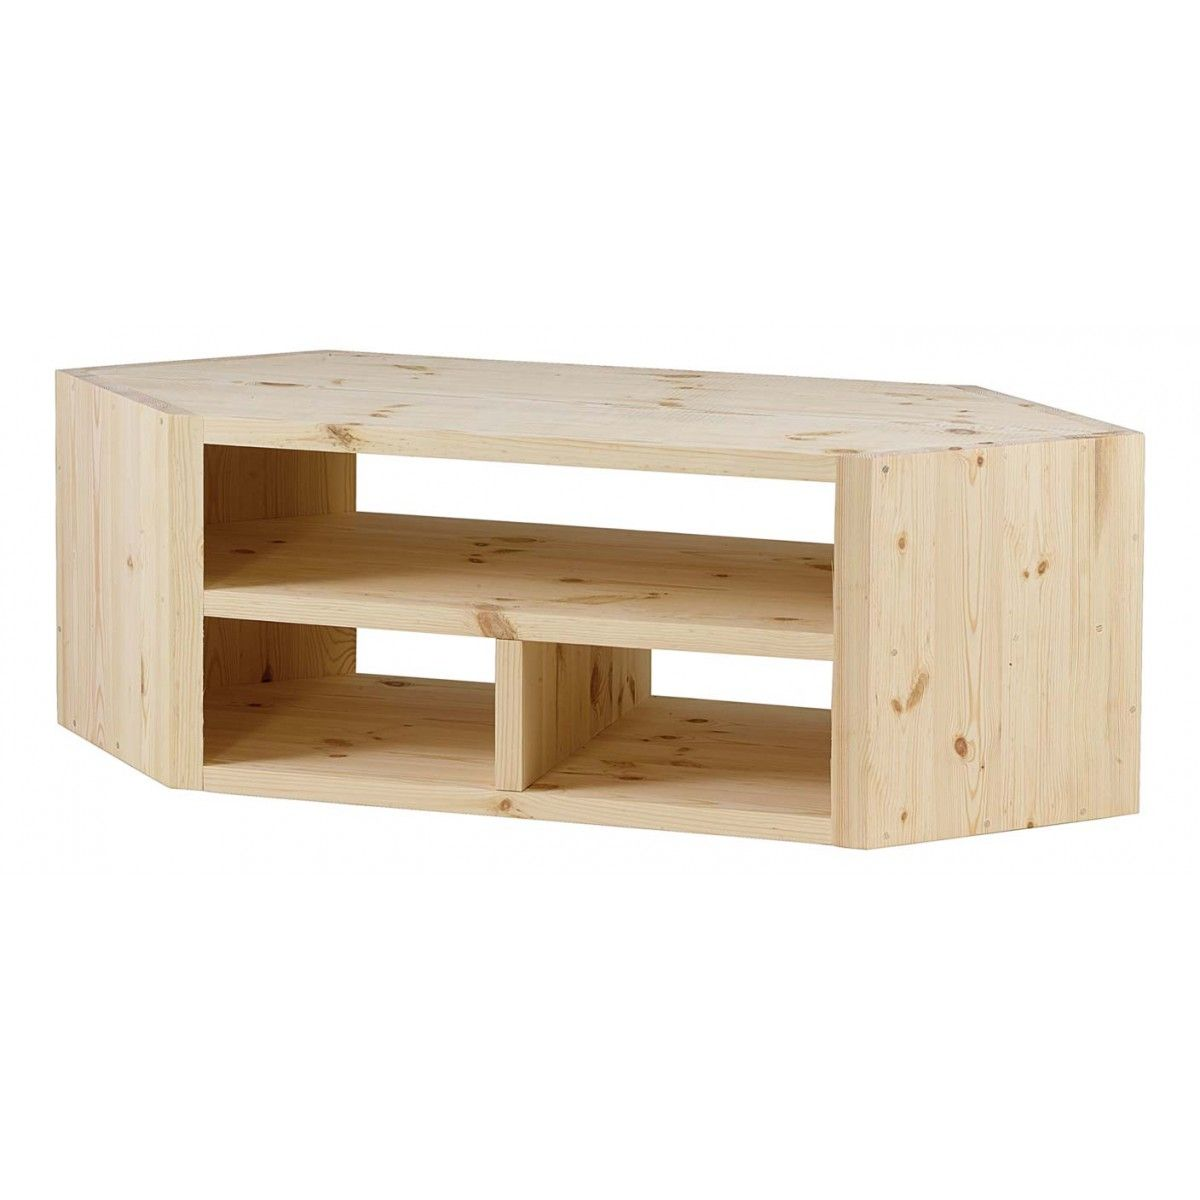 Meuble Tv D Angle Design Pin Massif Brut 3 Niches Matendance  # Meuble Tv D Angle En Bois